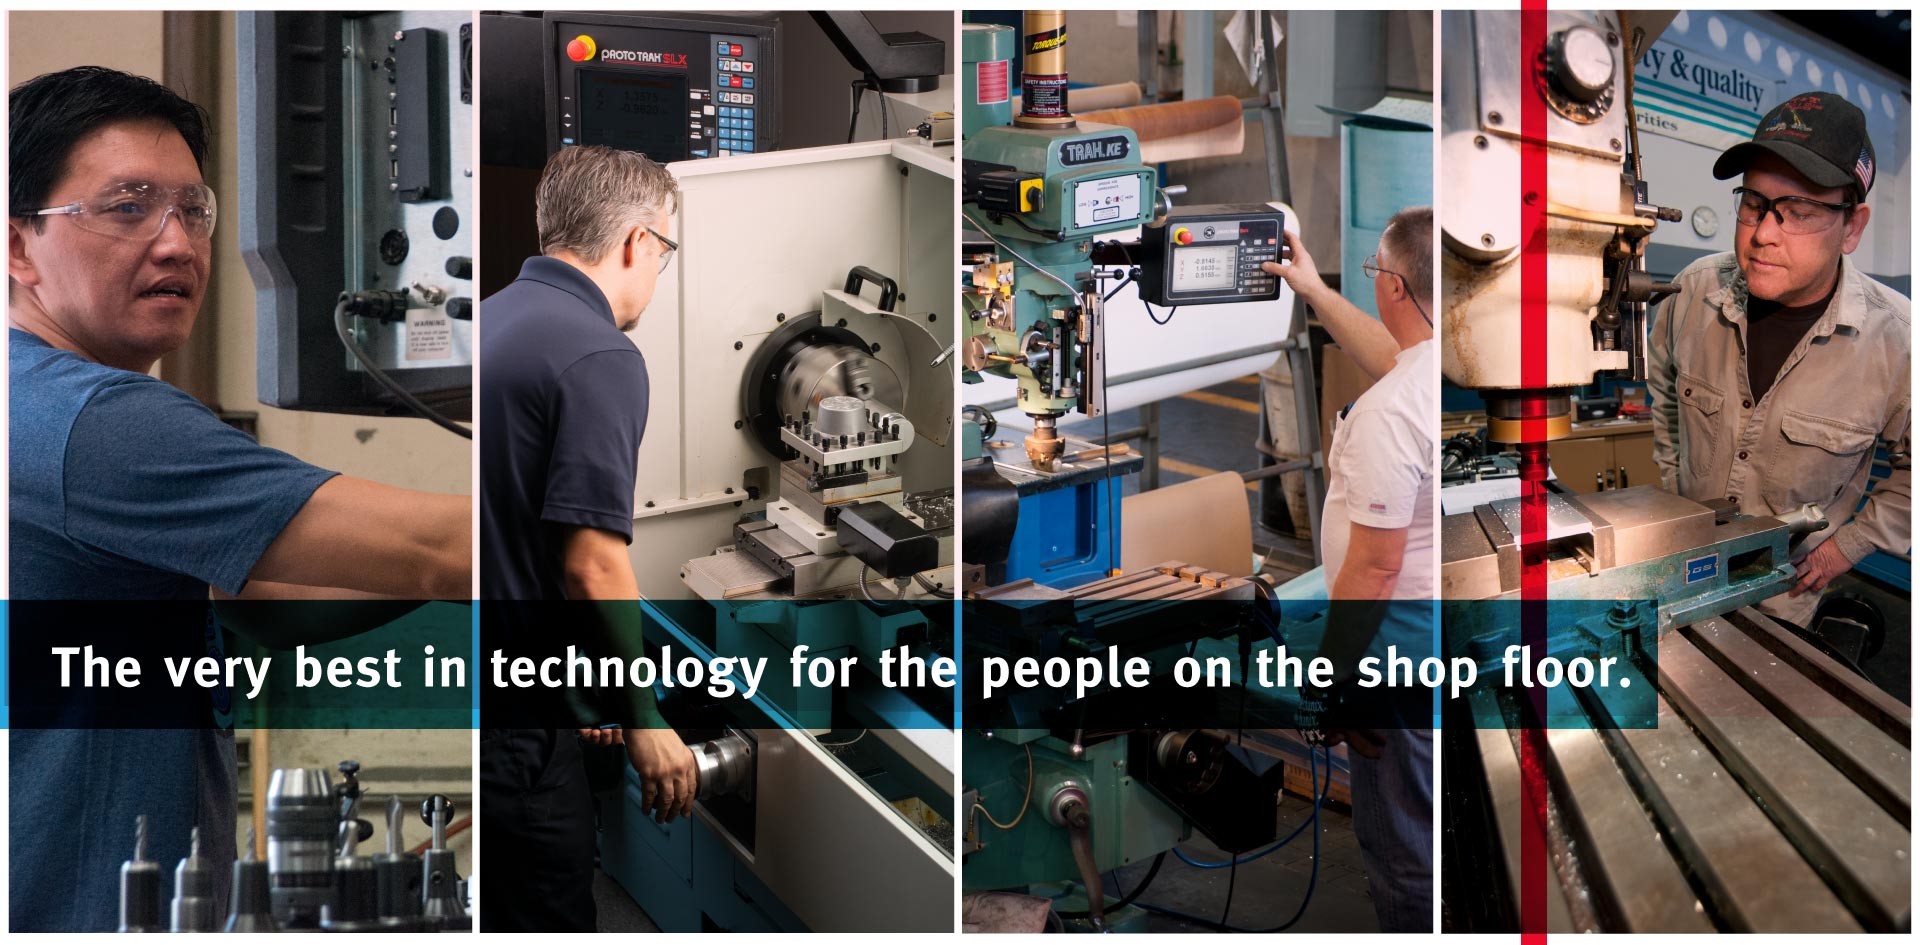 TRAK Machine Tools - The Very Best Technology for the People on the Shop Floor